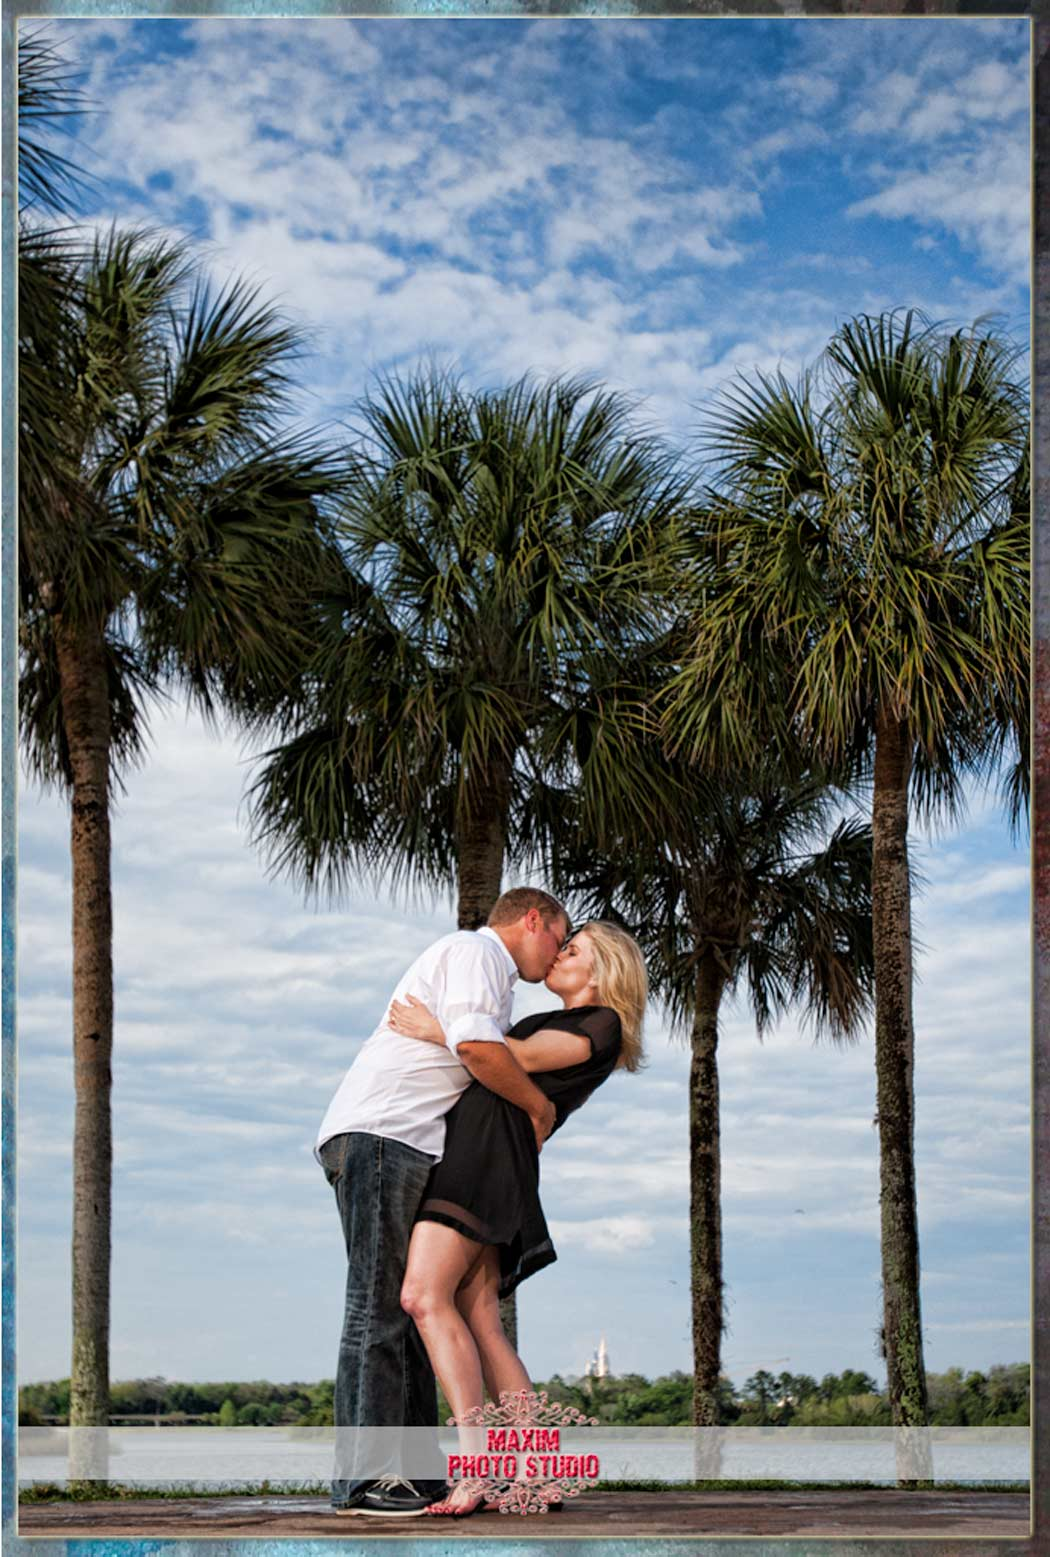 maxim photo studio photographed the Disney World engagement